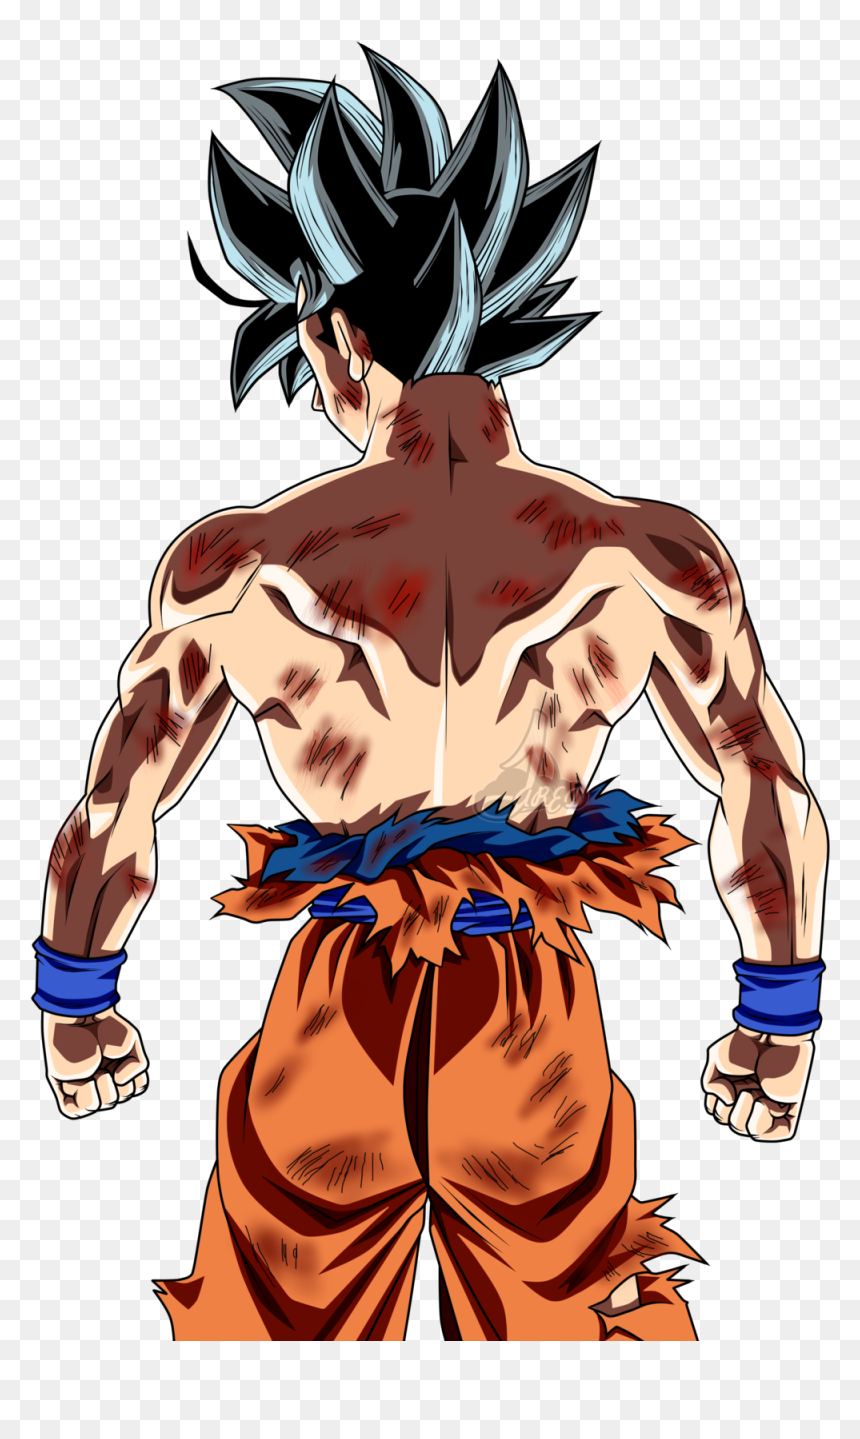 son goku png png download goku ultra instinct de dos transparent png vhv son goku png png download goku